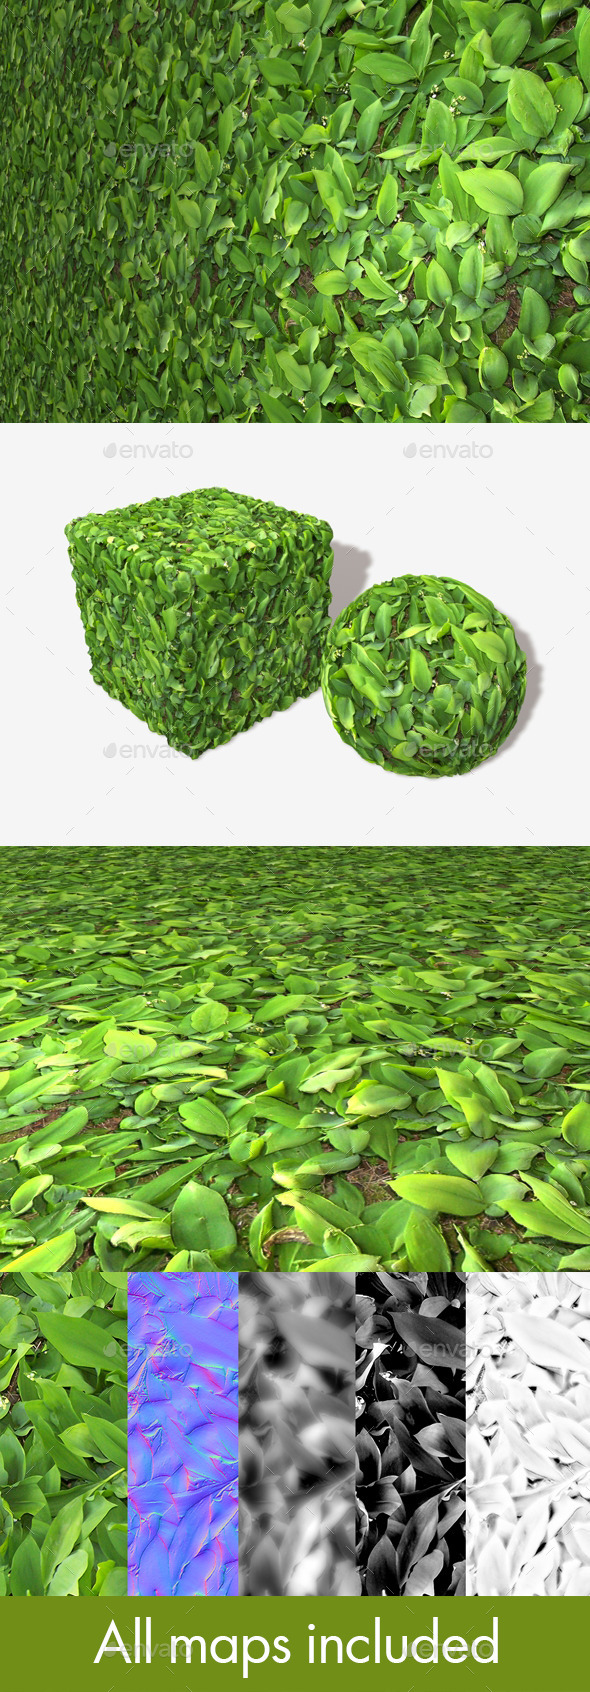 Leafy Plants Seamless Texture - 3DOcean Item for Sale